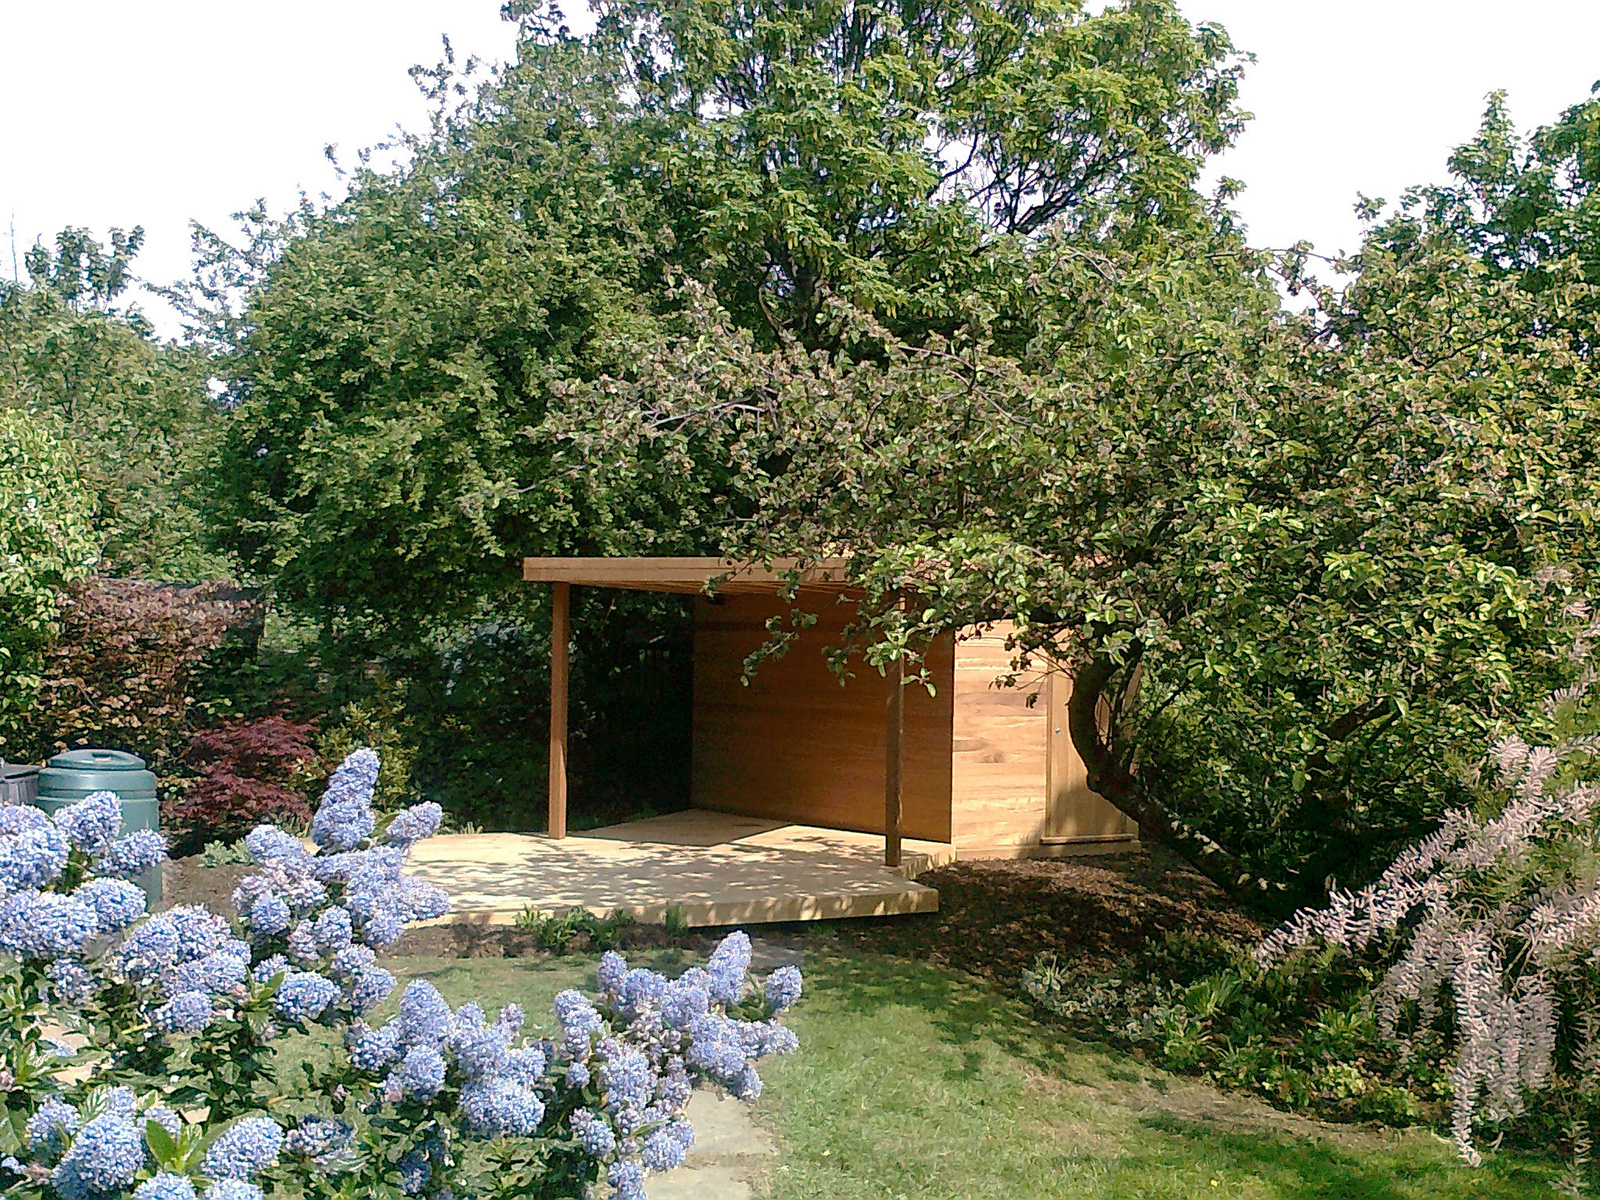 These clients wanted a sitting area, an awning and a good sized shed at the sunny end of their garden. This bespoke